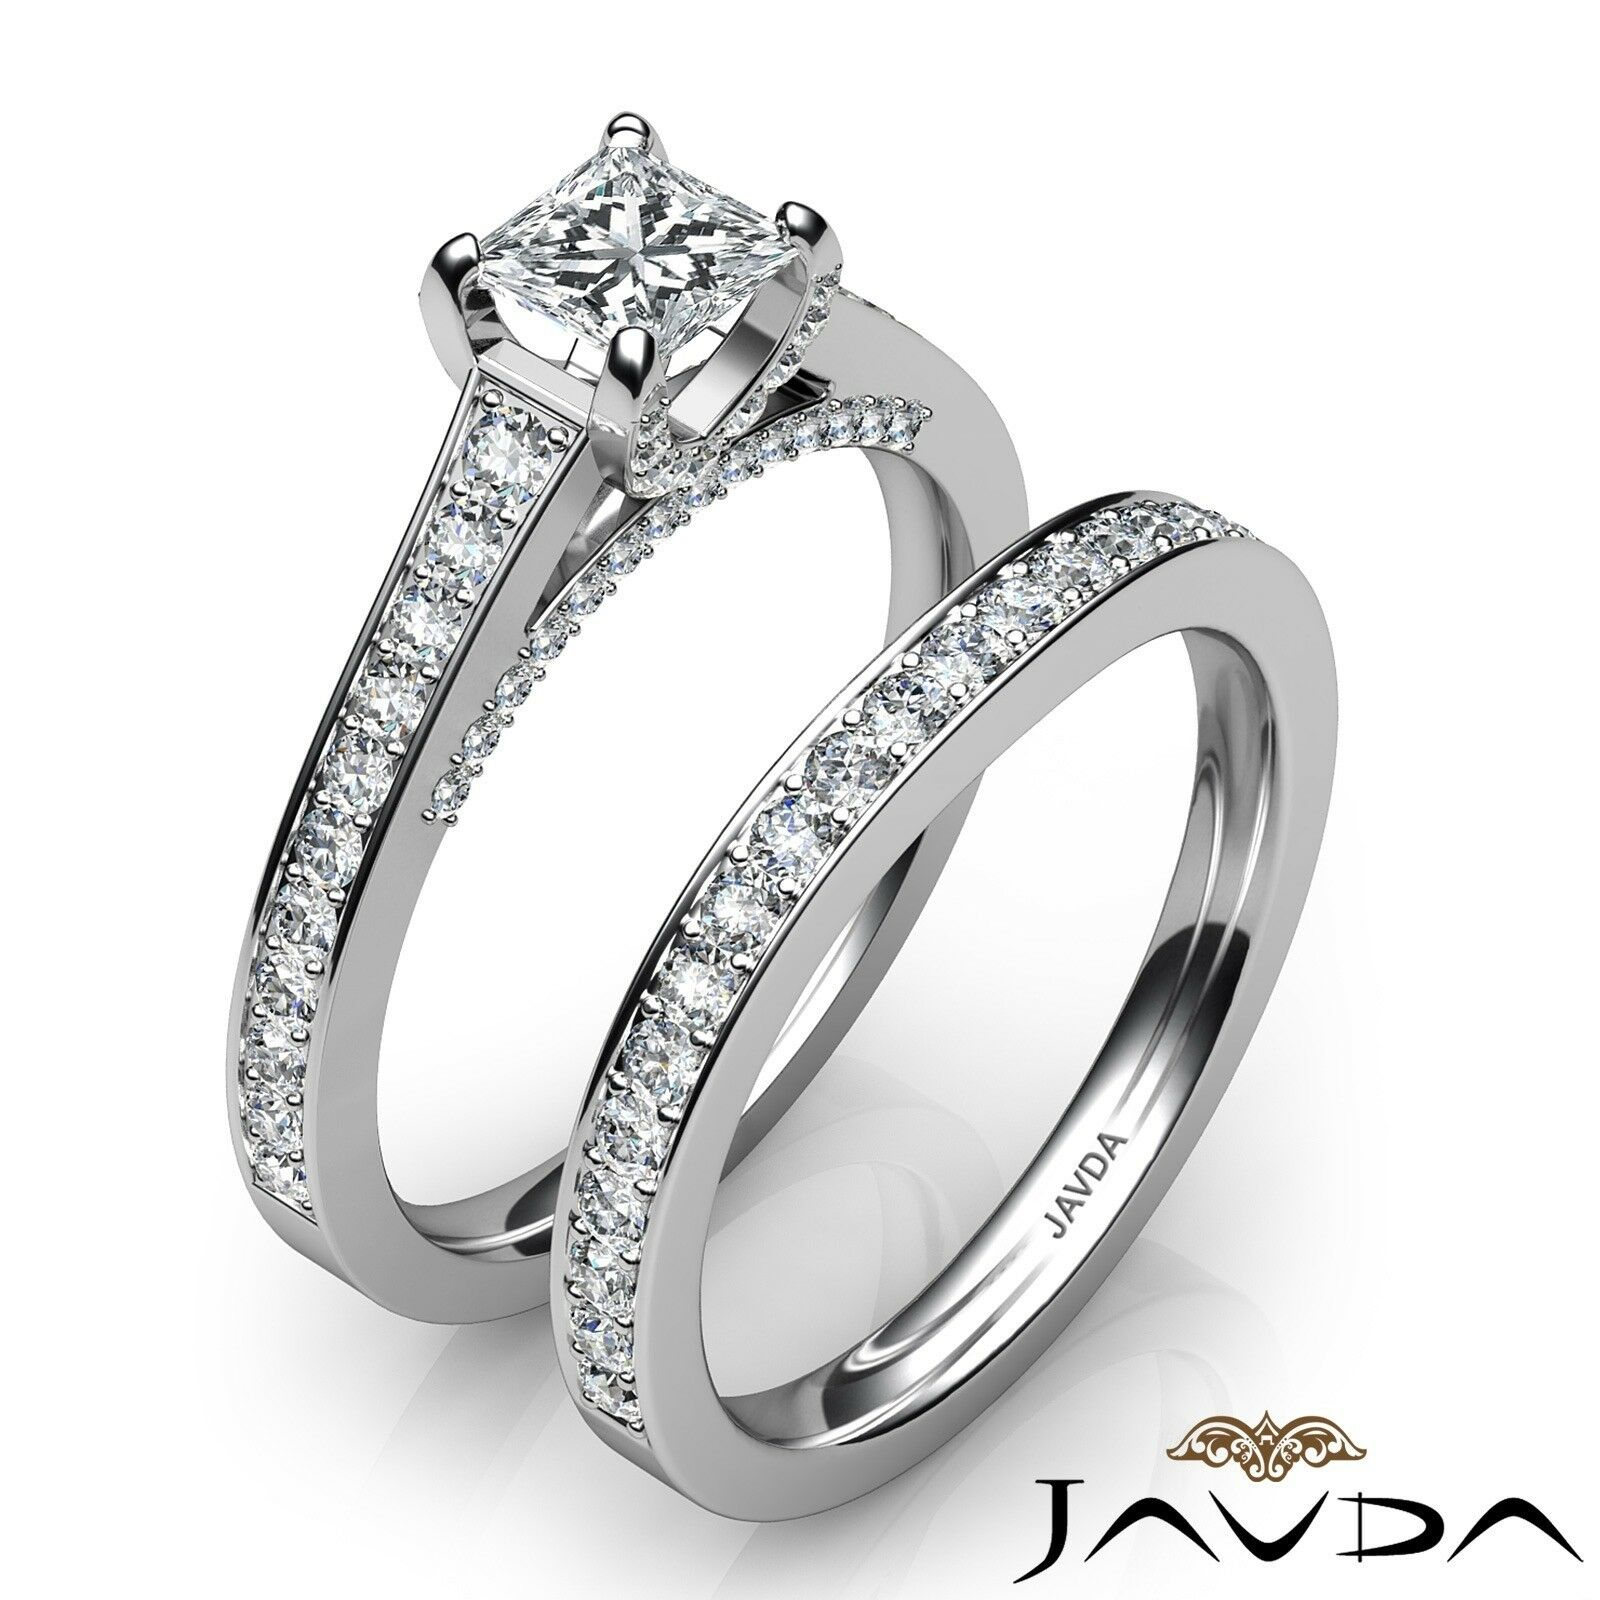 2.05ct Accent Bridge Pave Bridal Princess Diamond Engagement Ring GIA F-VS2 Gold 2